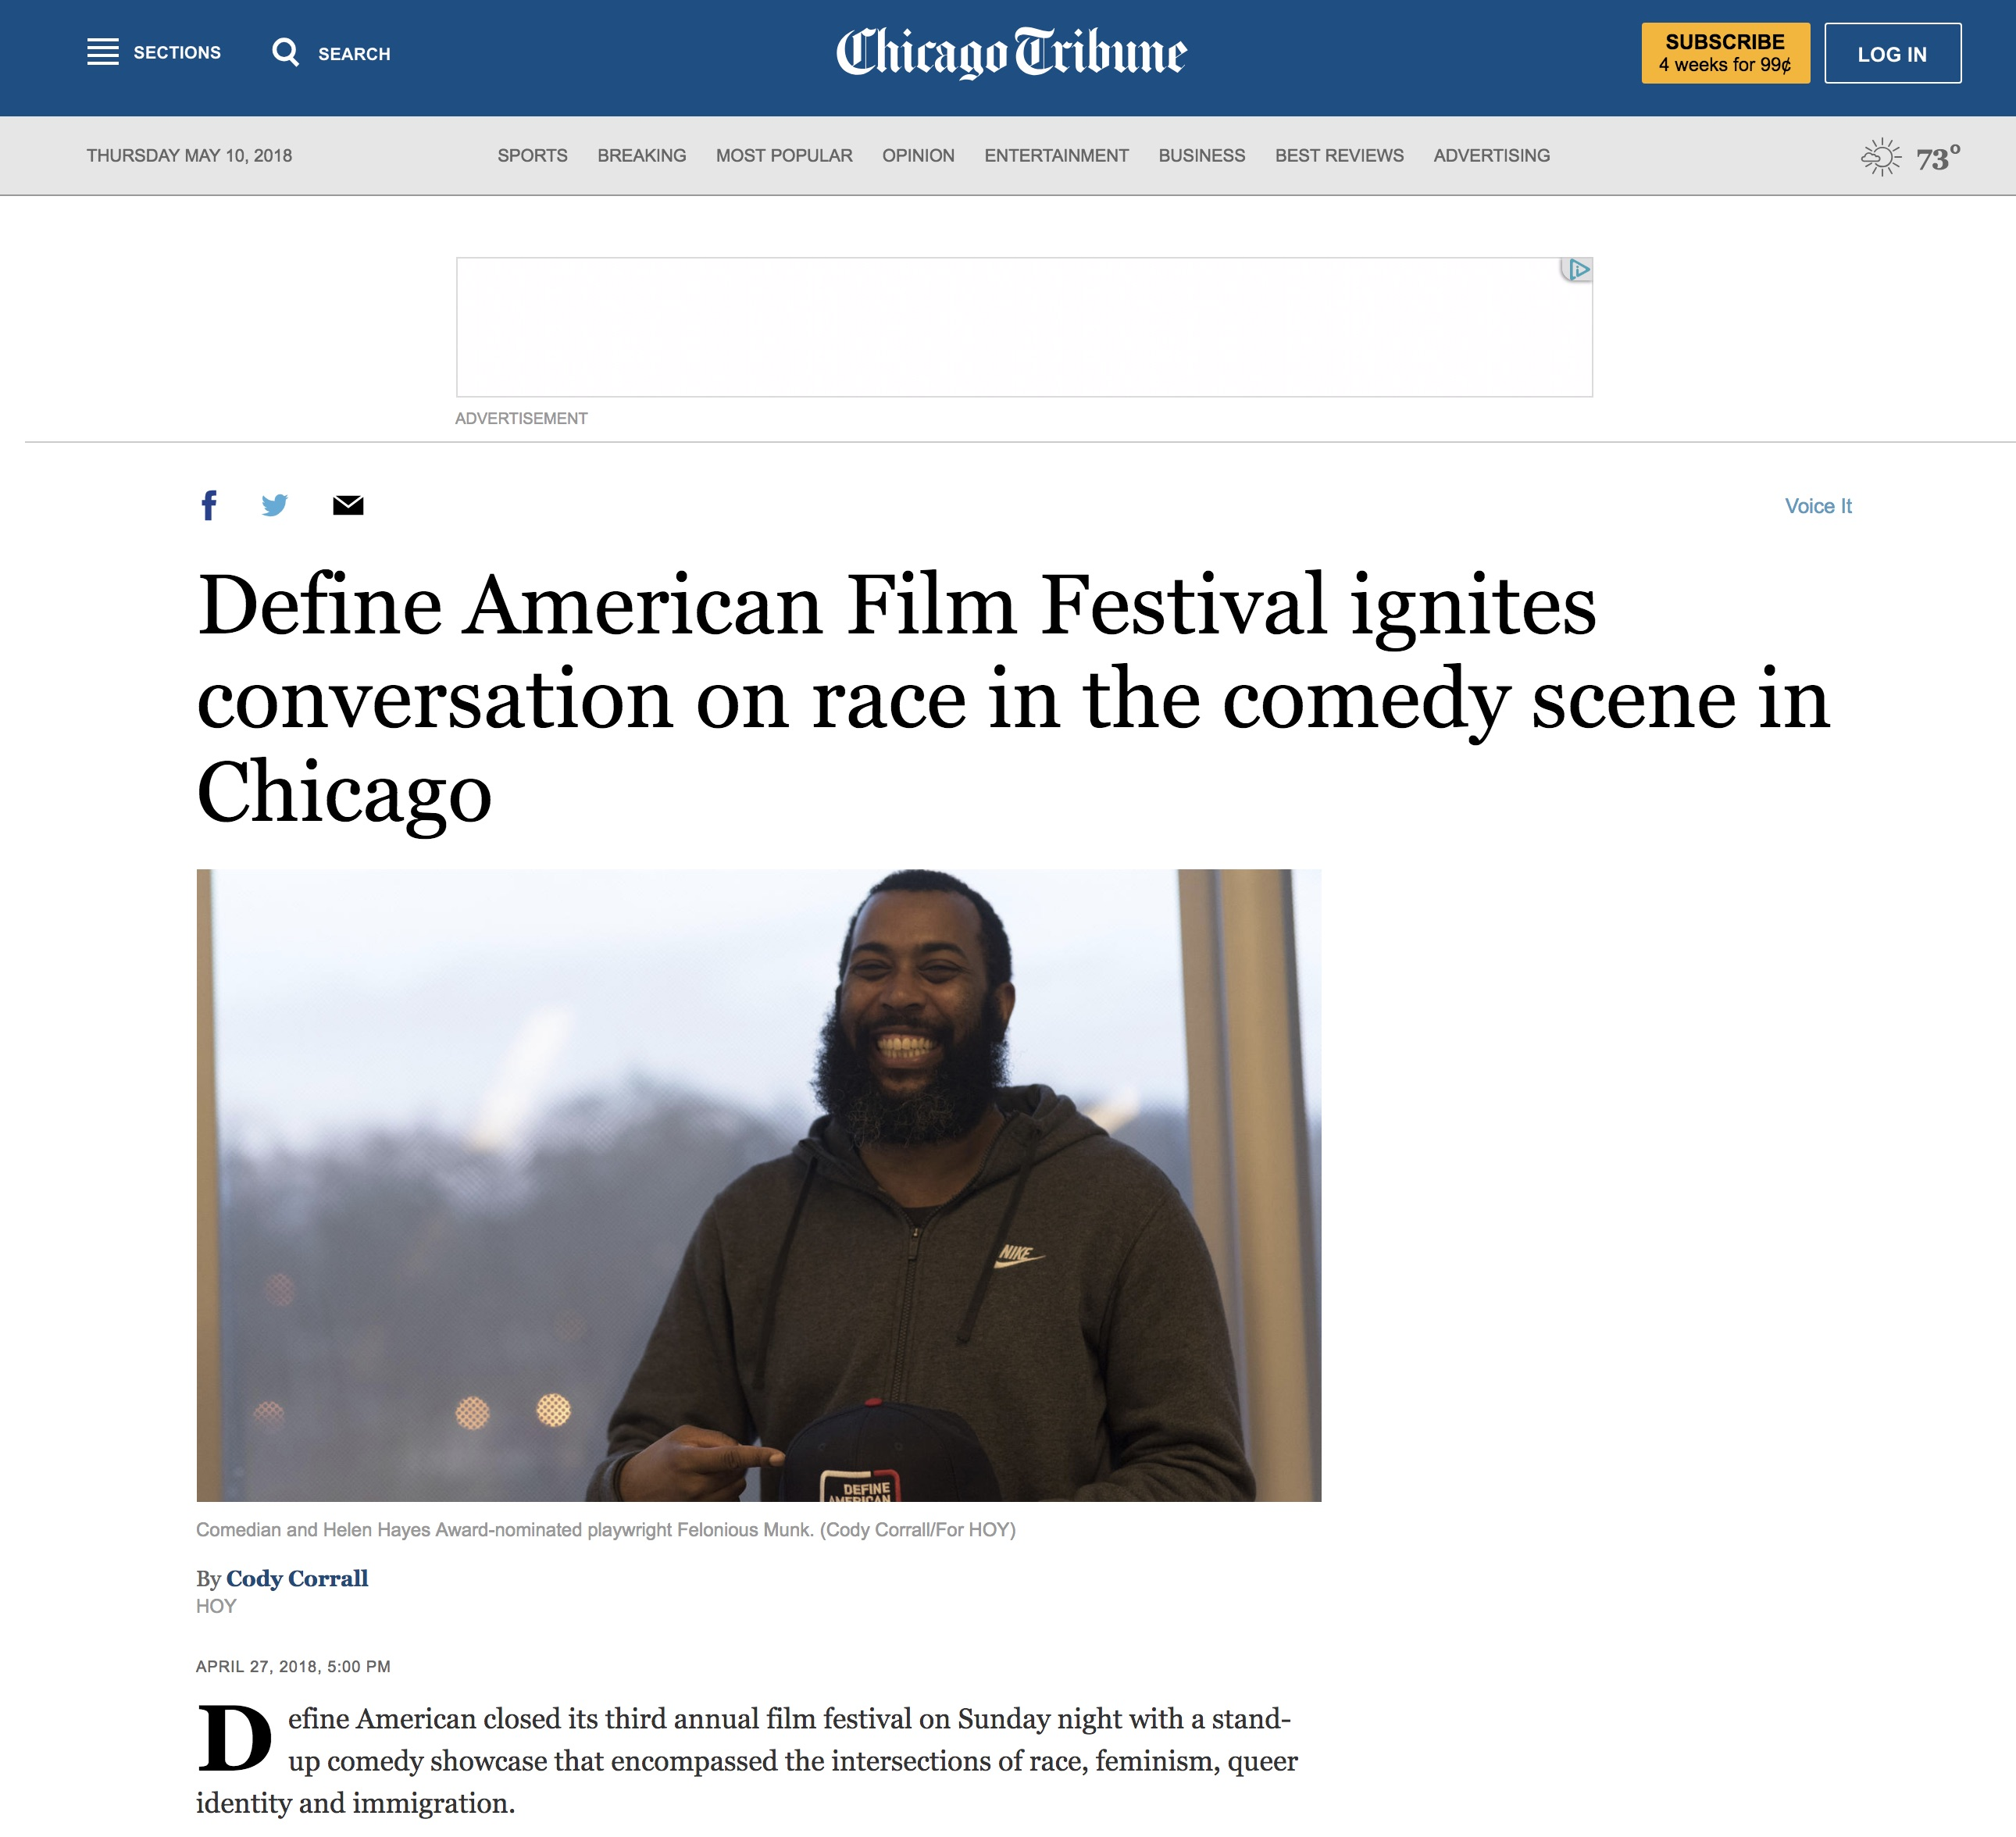 Hoy/Chicago Tribune Student Articles